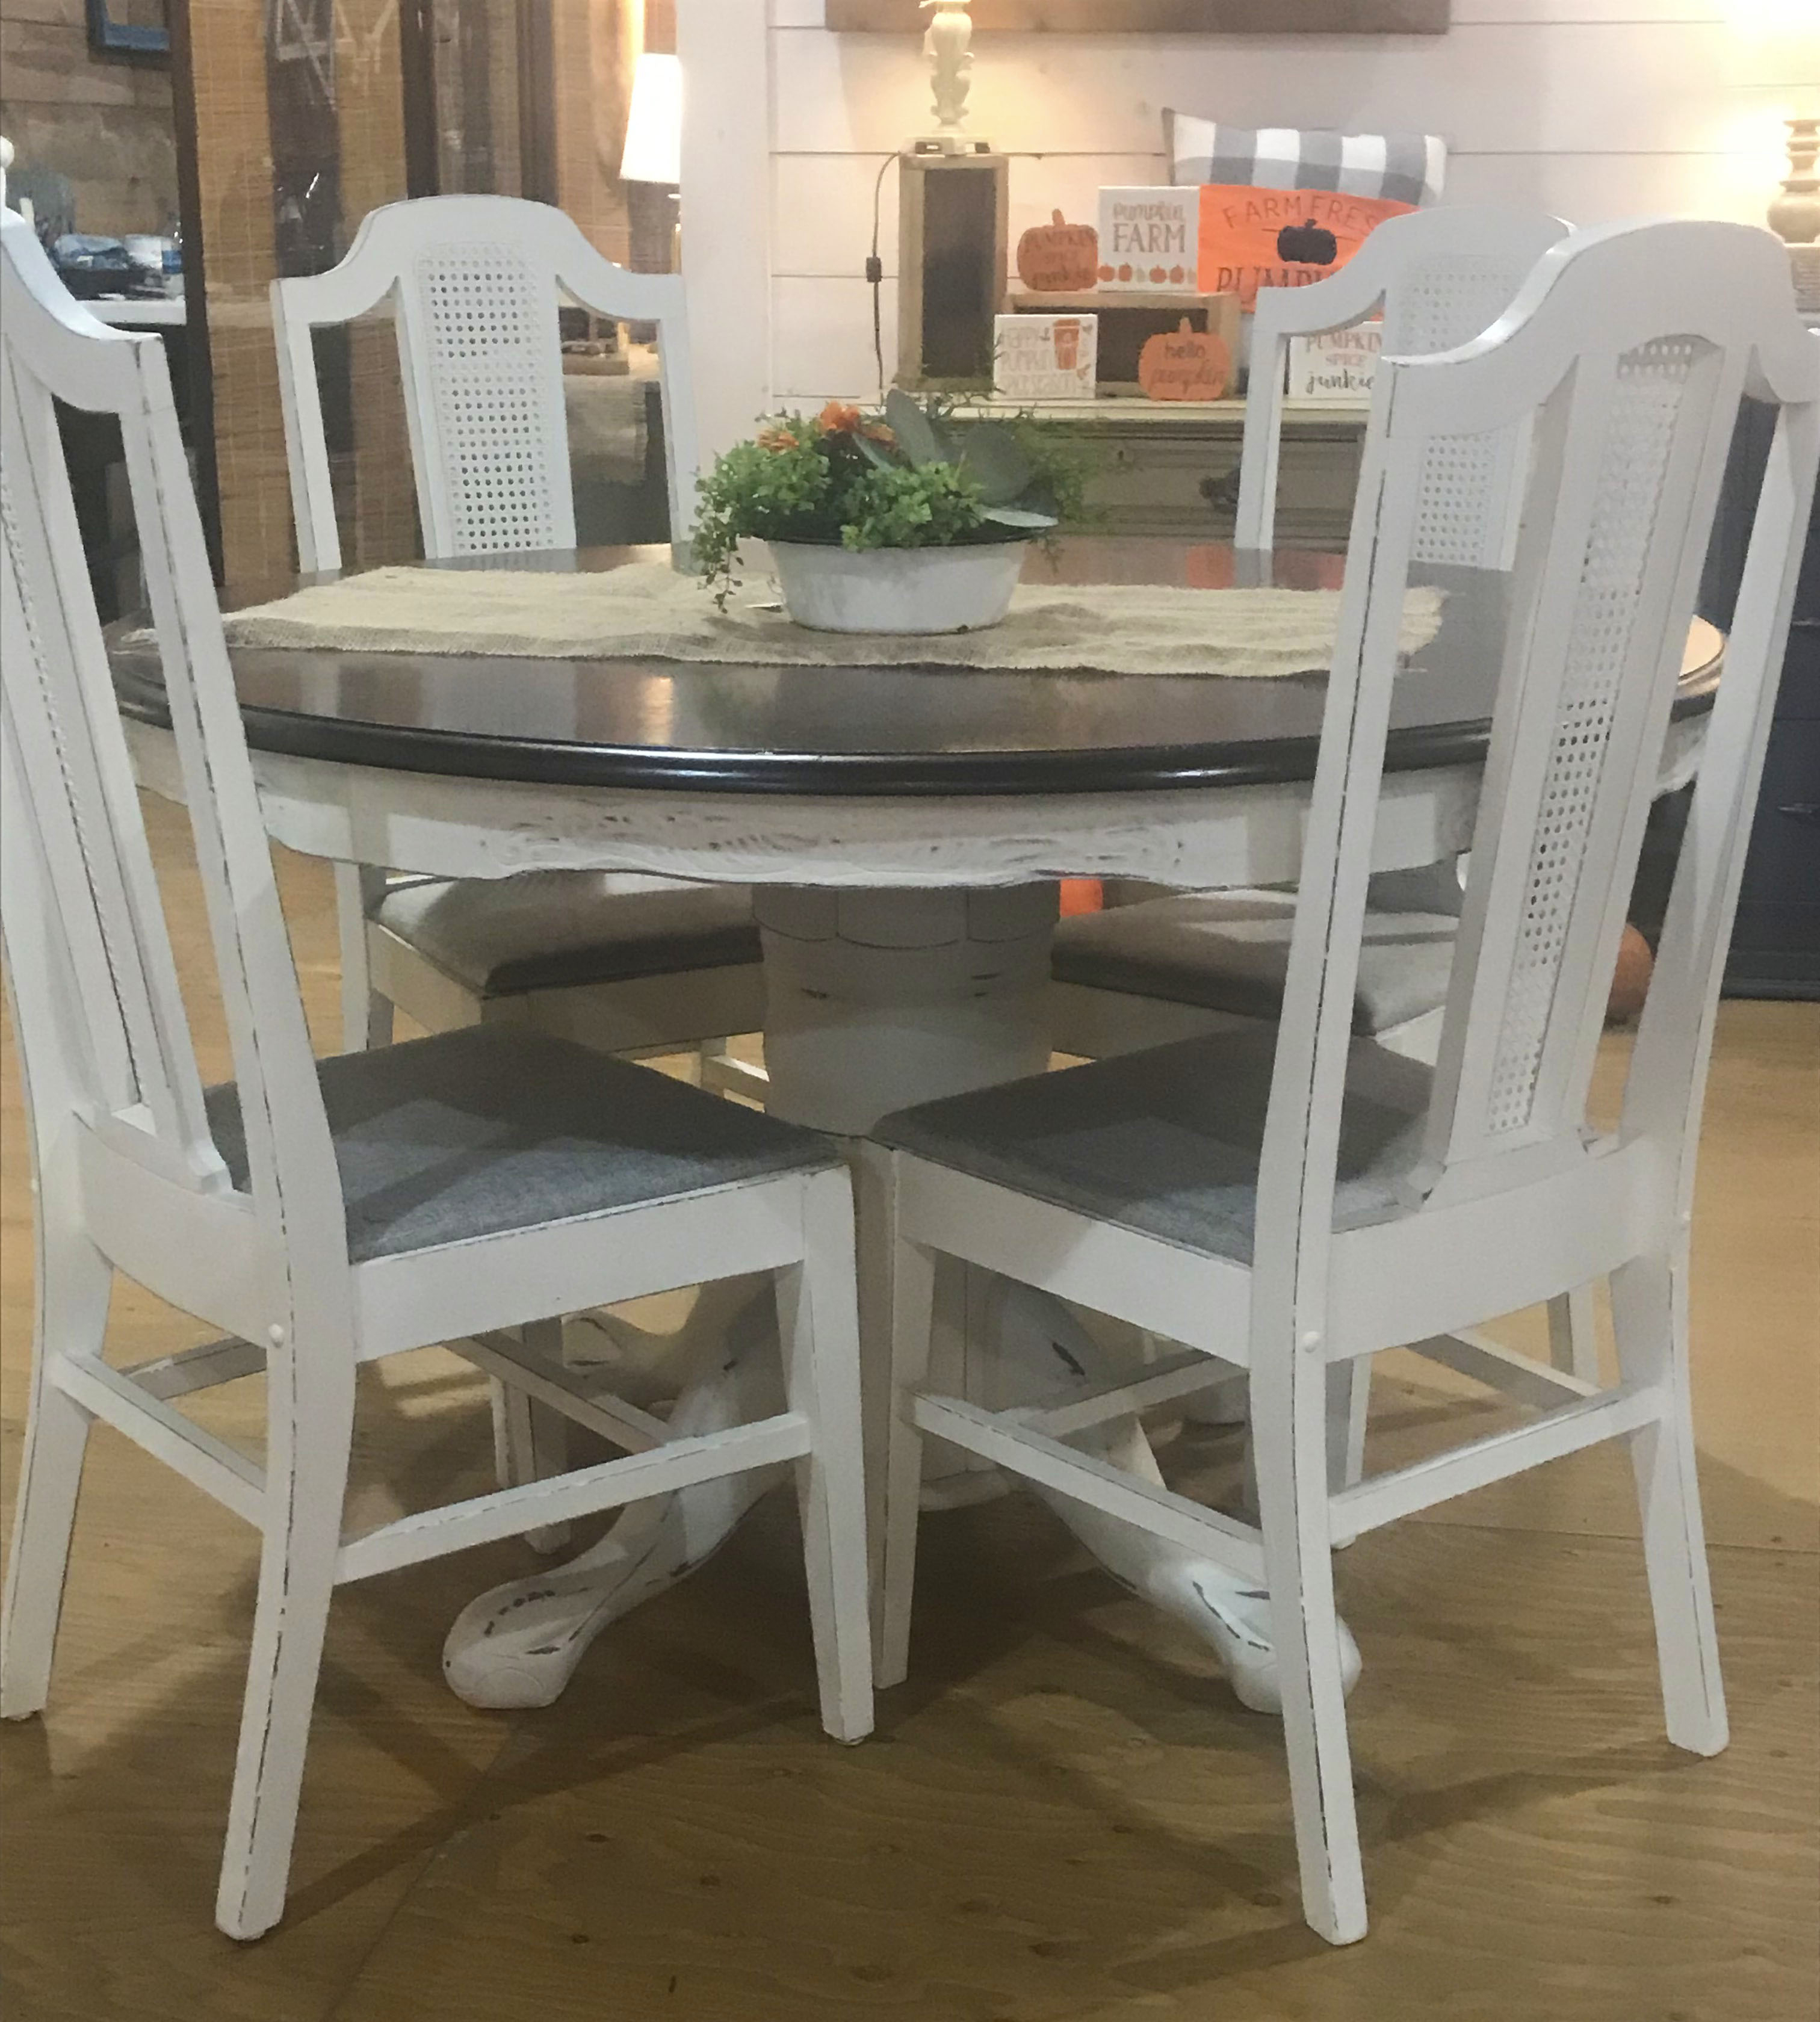 Reborn Home Furnishings | Items For Sale Within 2017 Falmer 3 Piece Solid Wood Dining Sets (View 2 of 20)